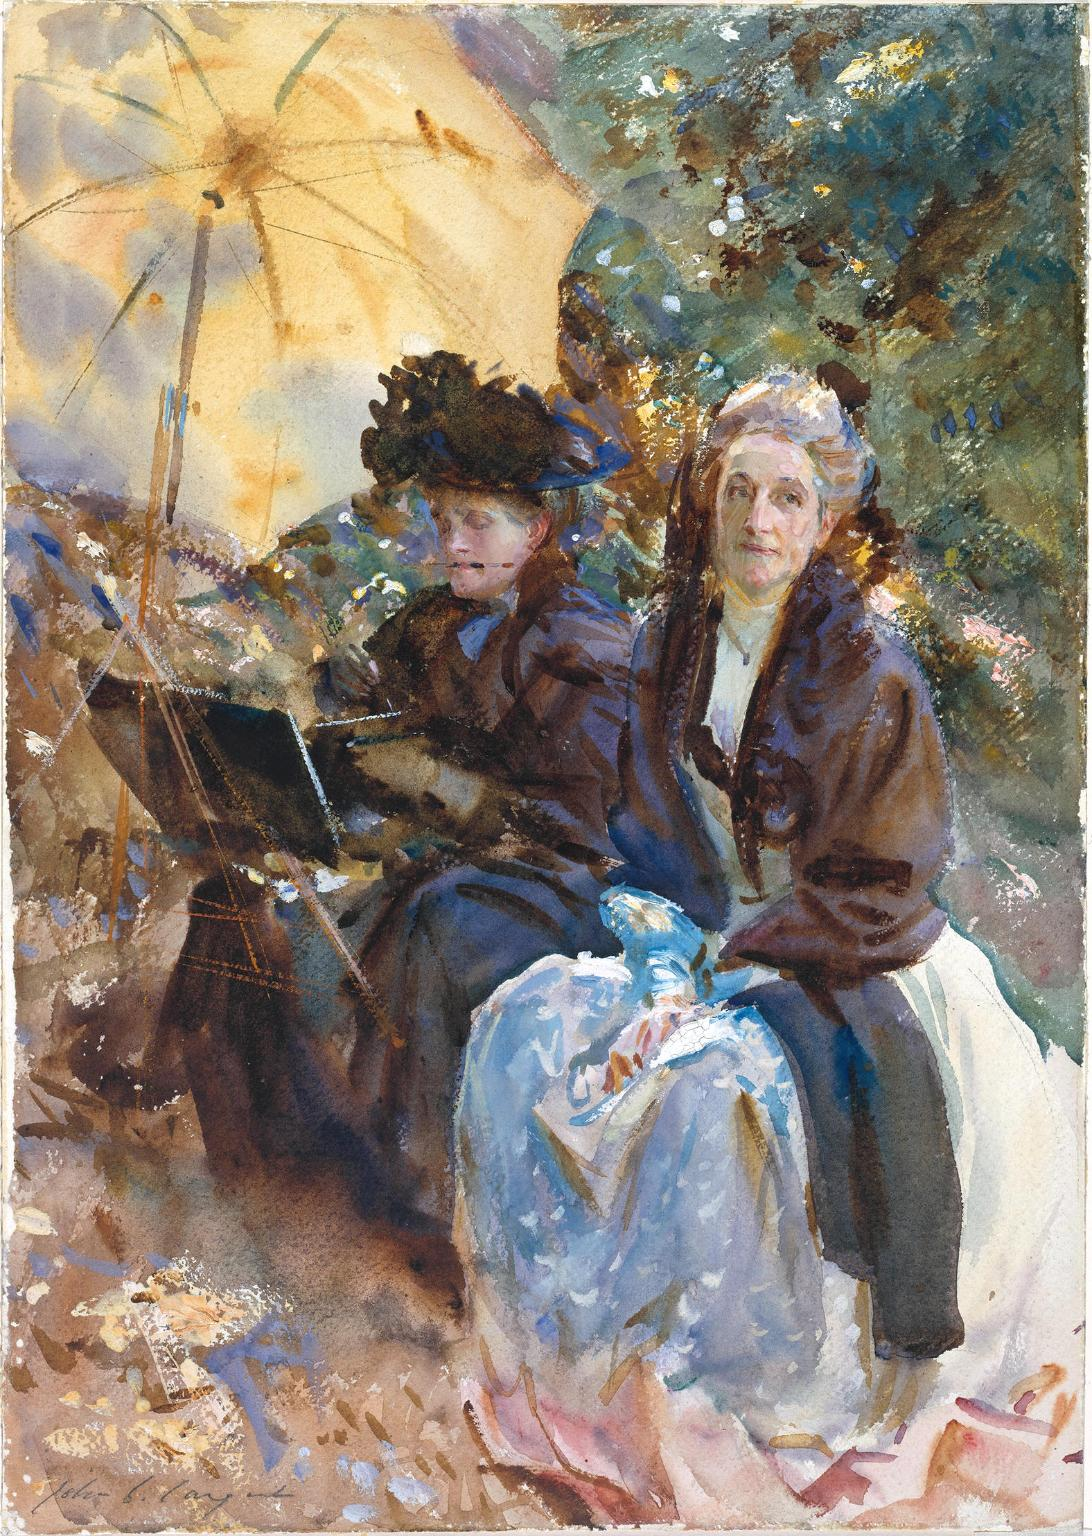 Miss Eliza Wedgwood and Miss Sargent Sketching 1908 by John Singer Sargent 1856-1925